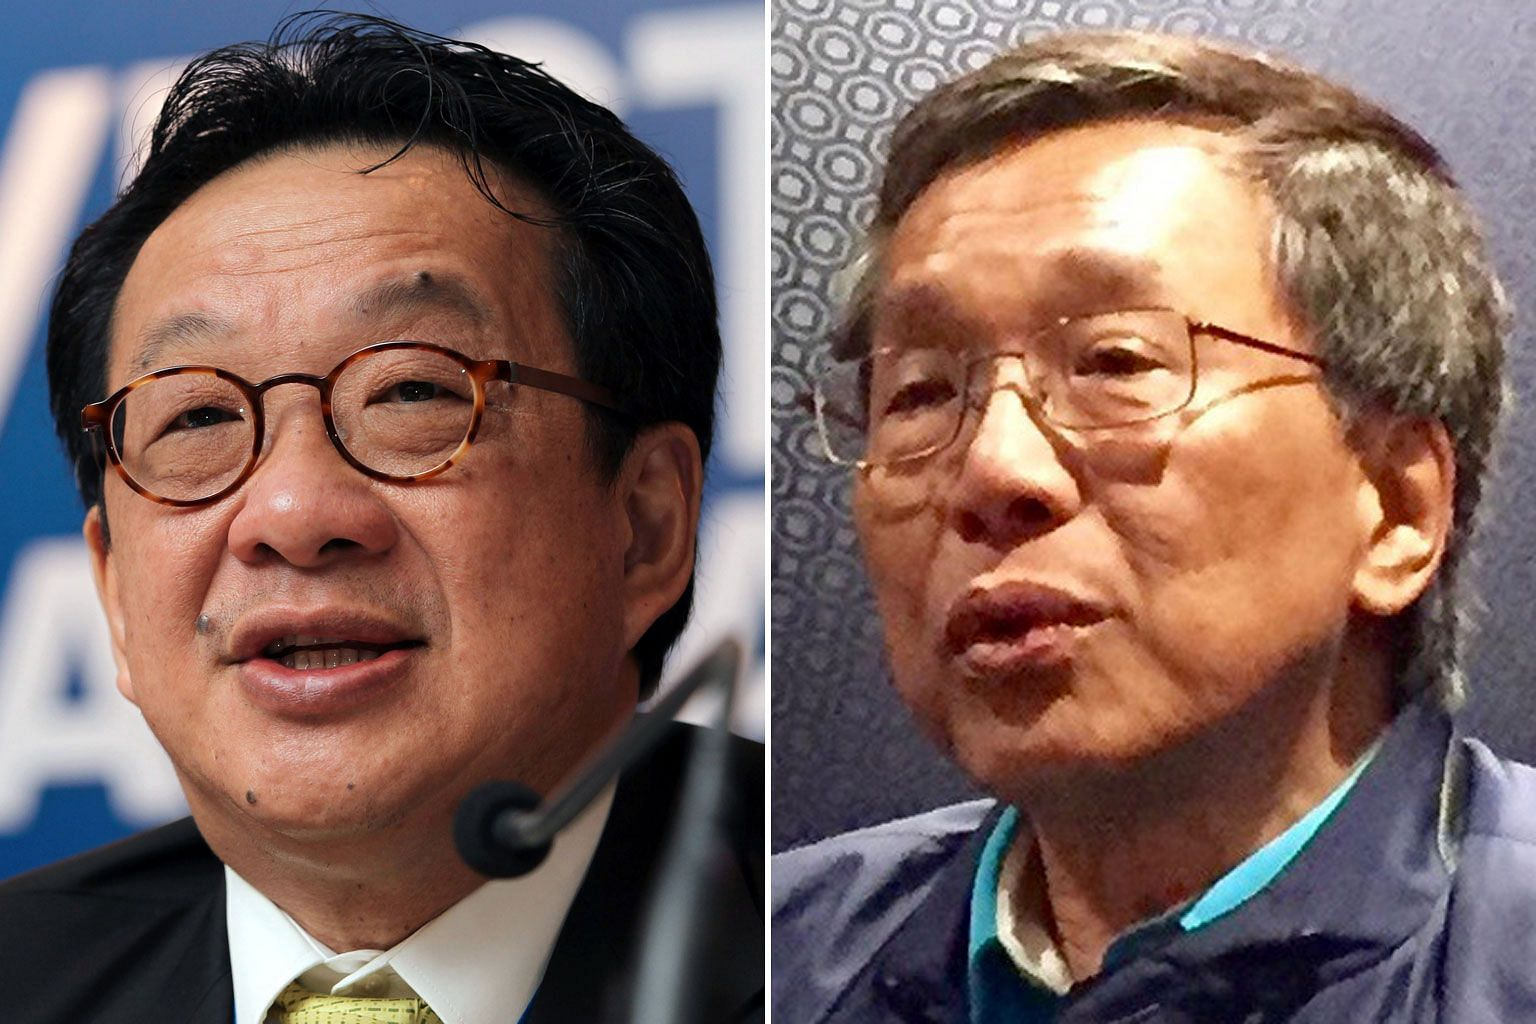 Tan Sri Francis Yeoh Sock Ping (left) is tipped to take over YTL Group. Tan Sri Lim Kok Thay is the chairman of Genting Group, which is locked in court battles over ownership.